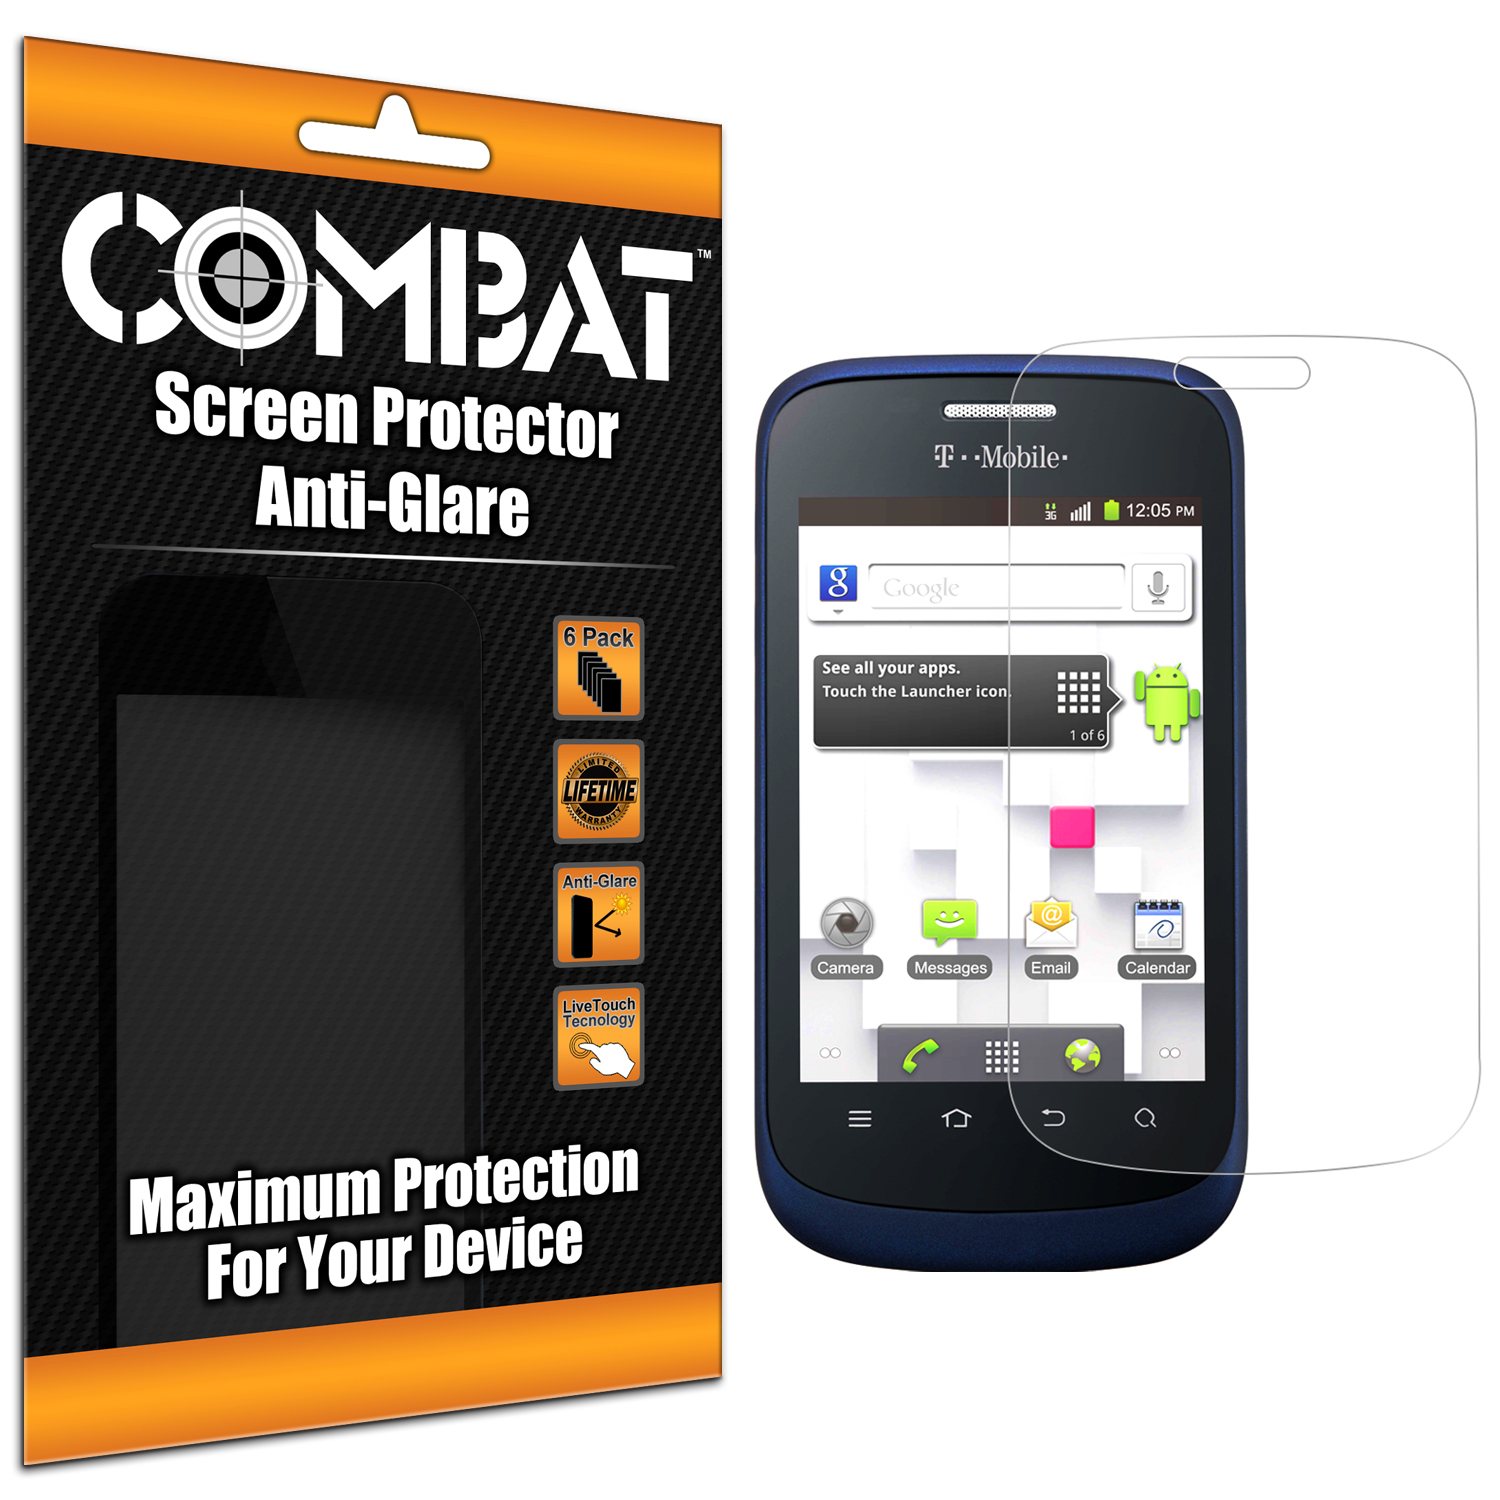 ZTE Concord 2 Combat 6 Pack Anti-Glare Matte Screen Protector